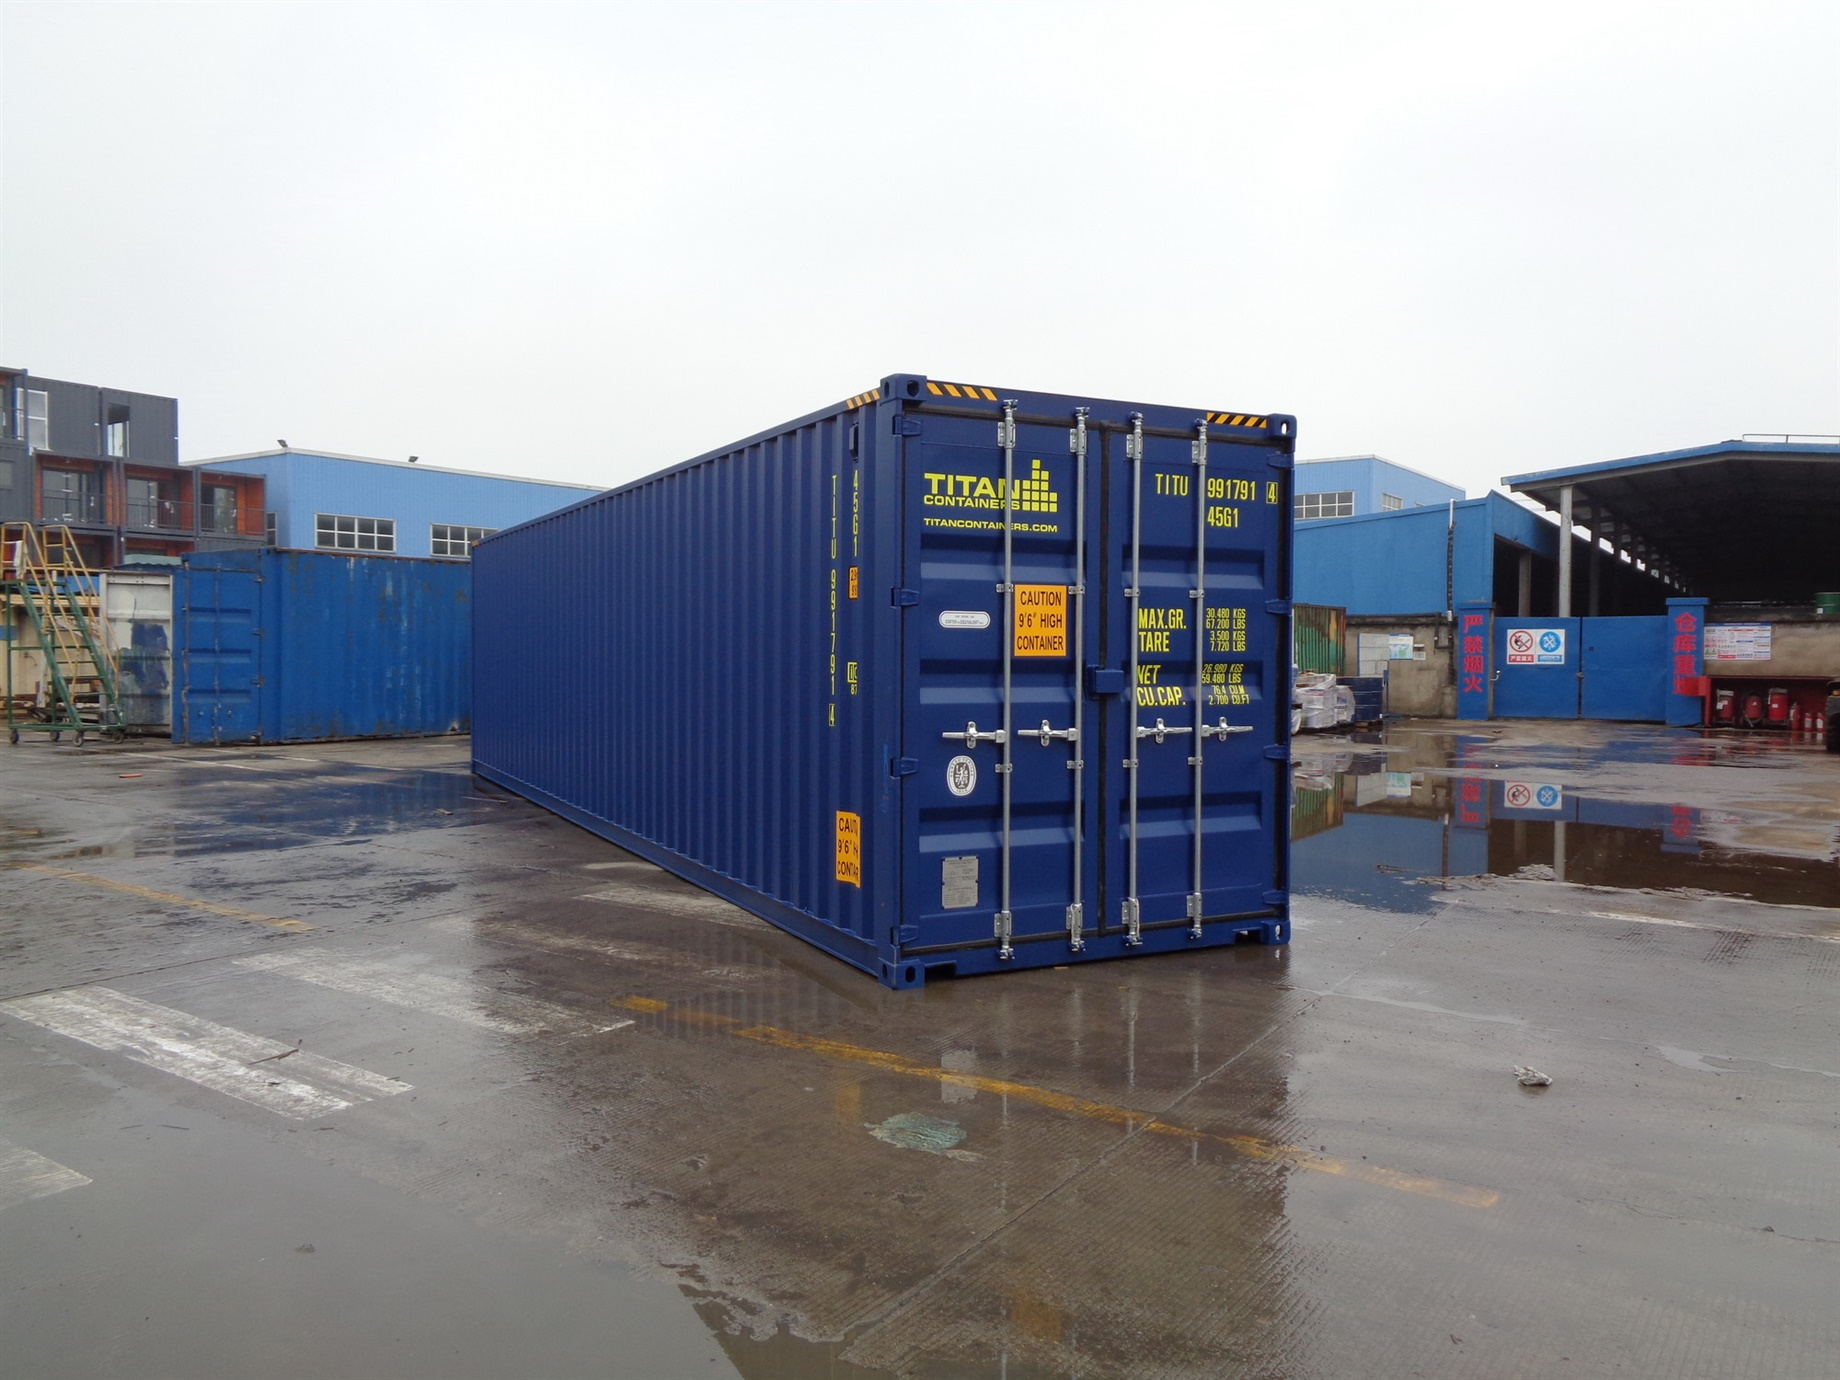 40 foot HC High Cube blue storage container titan containers